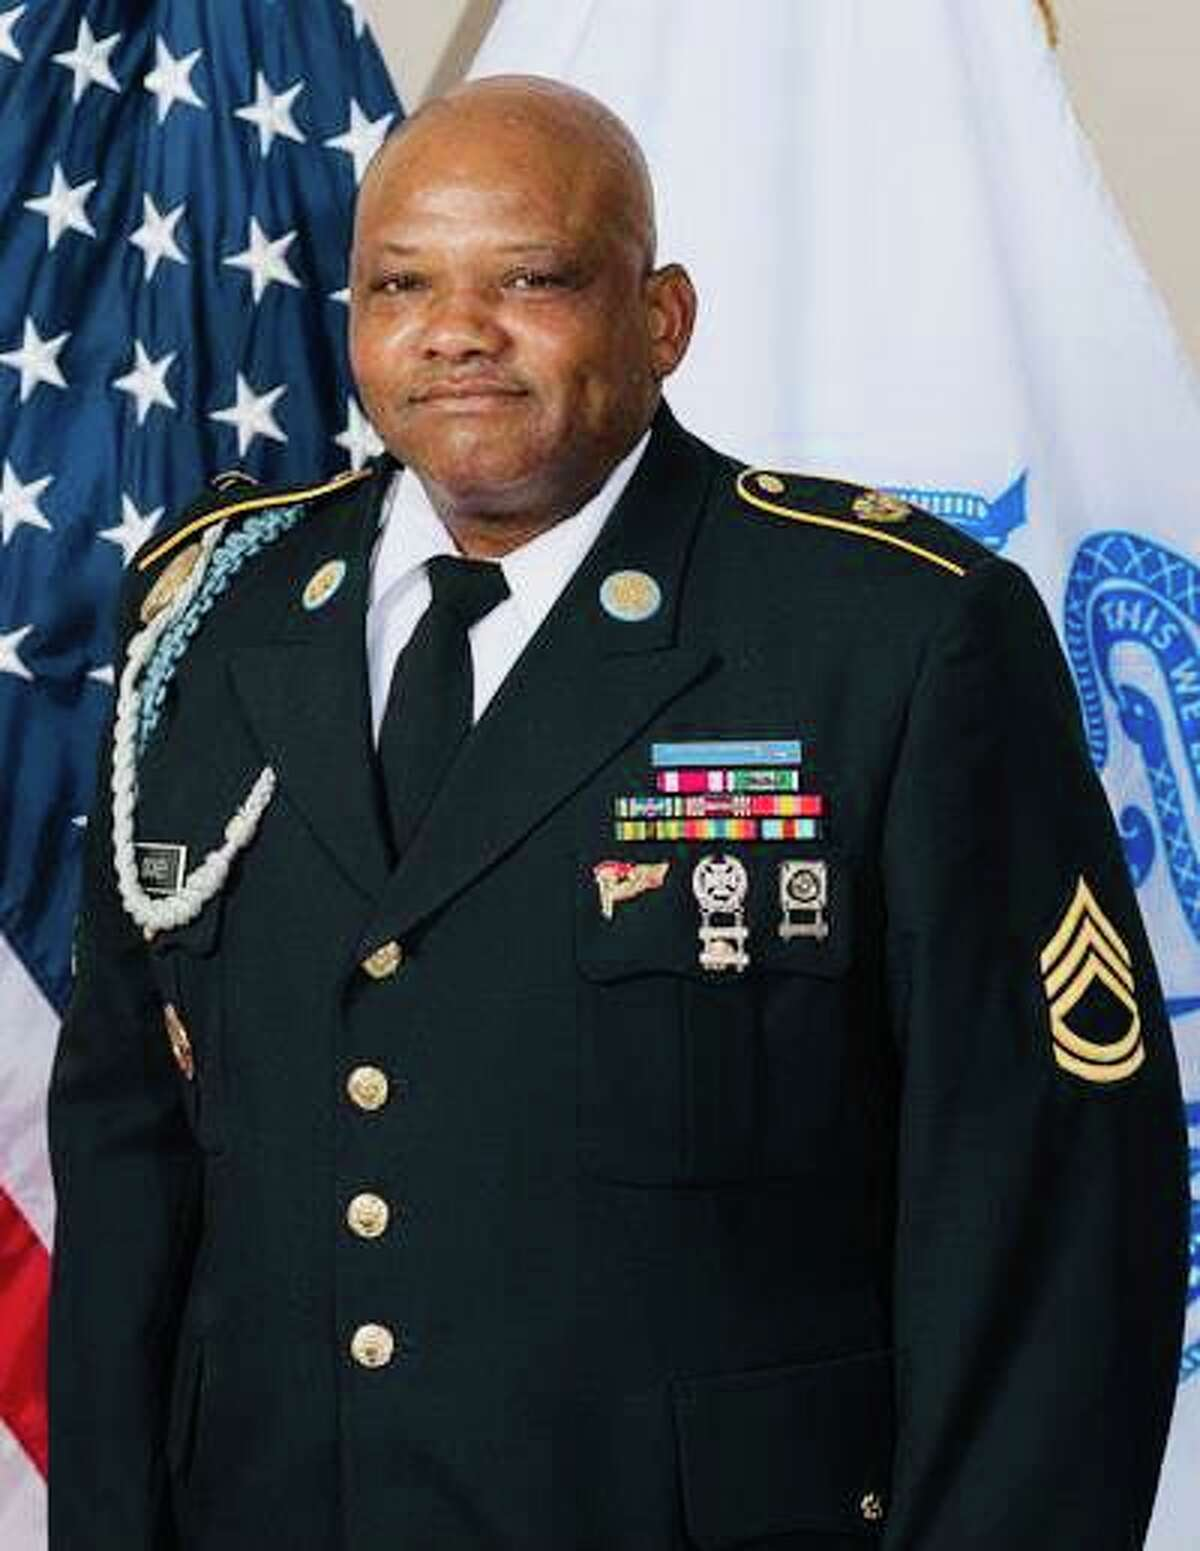 Freddy Dickey, a beloved Austin High School JROTC instructor and athletic coach, died in a car accident Friday. He was 63.